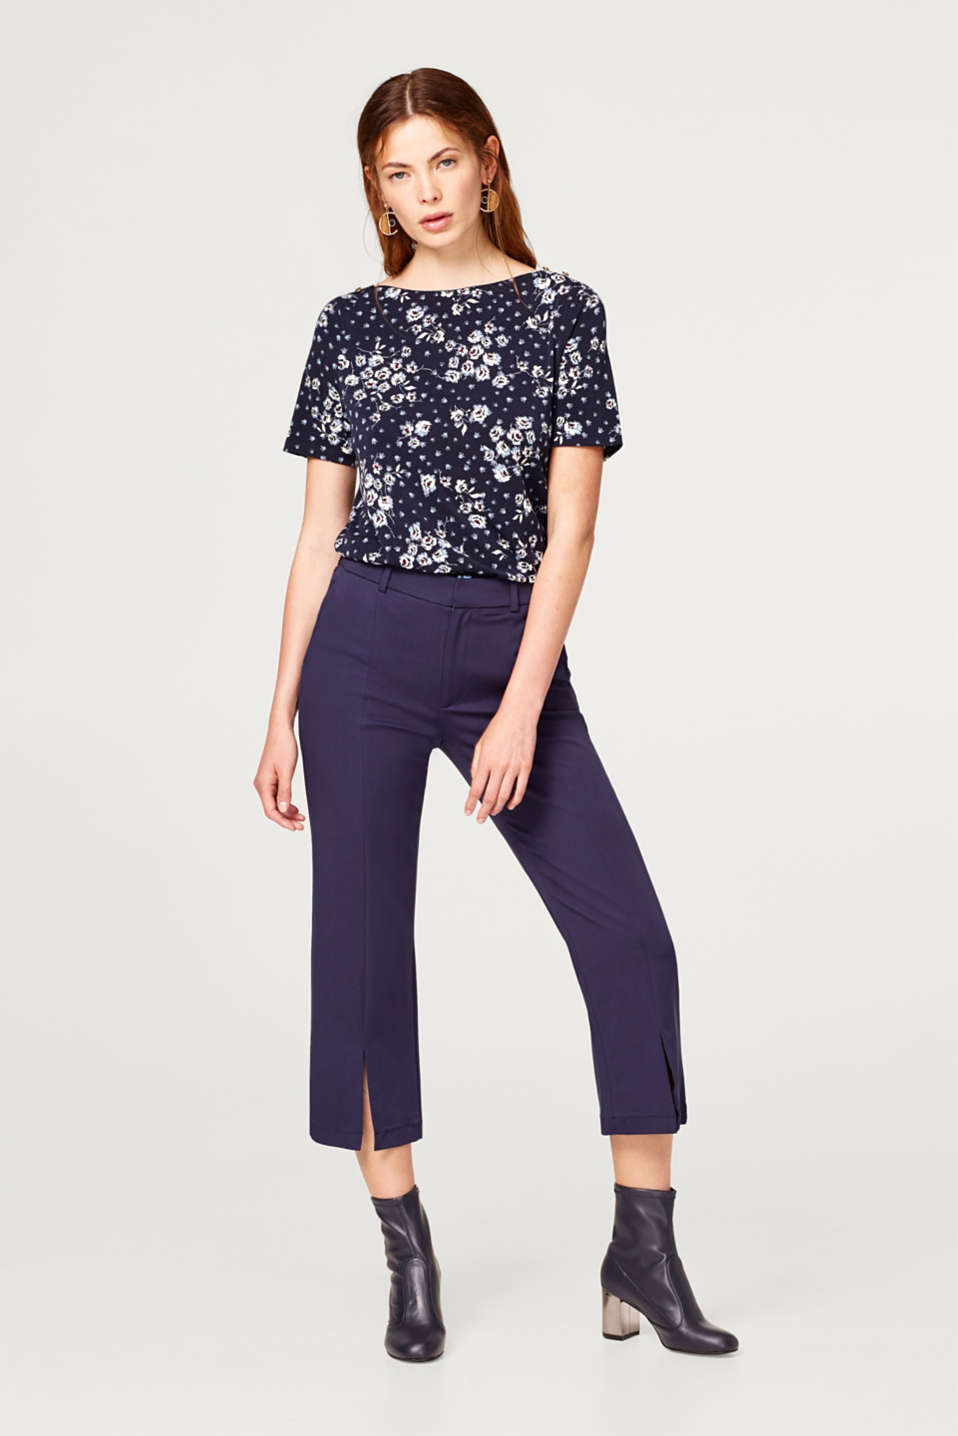 Stretch top with a floral print